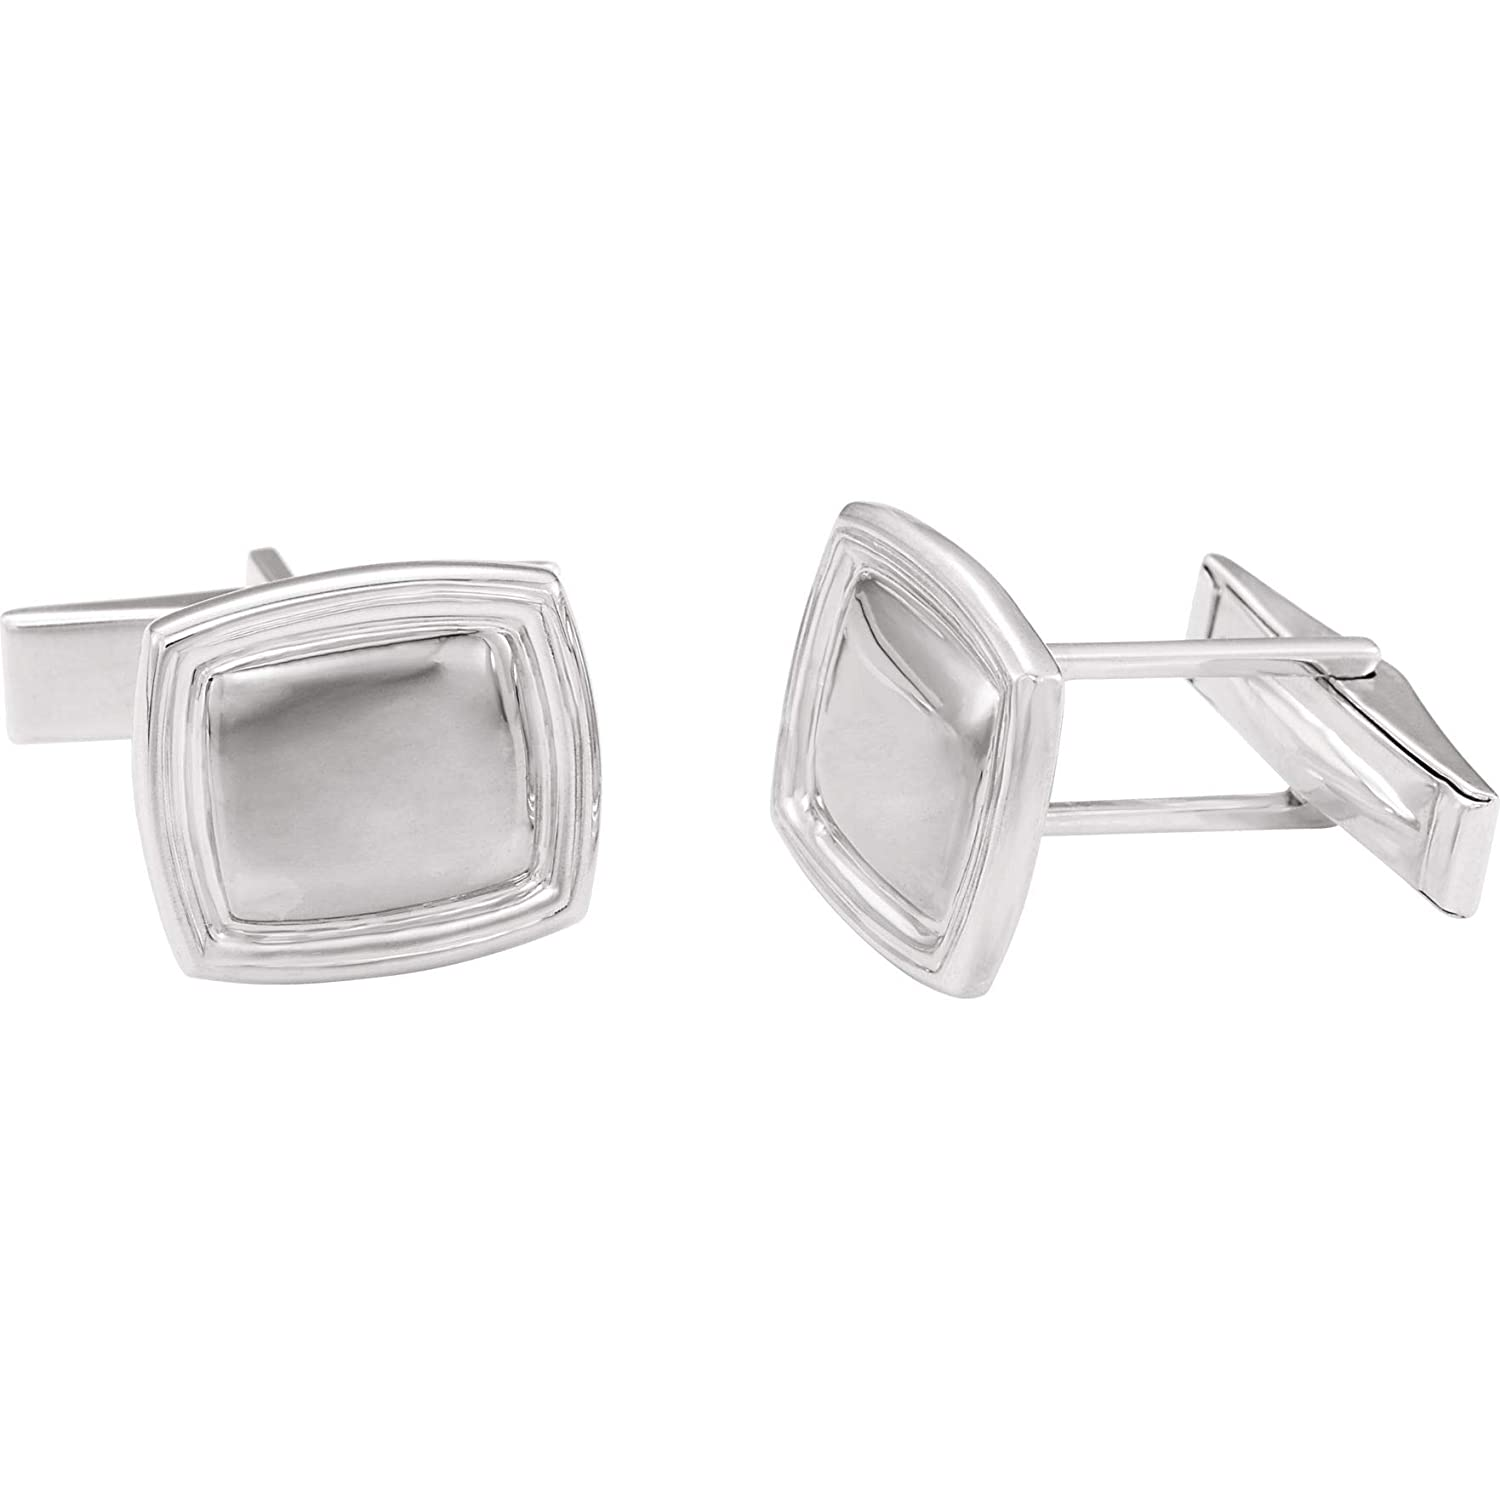 Bonyak Jewelry Sterling Silver 14x16 mm Square Cuff Links